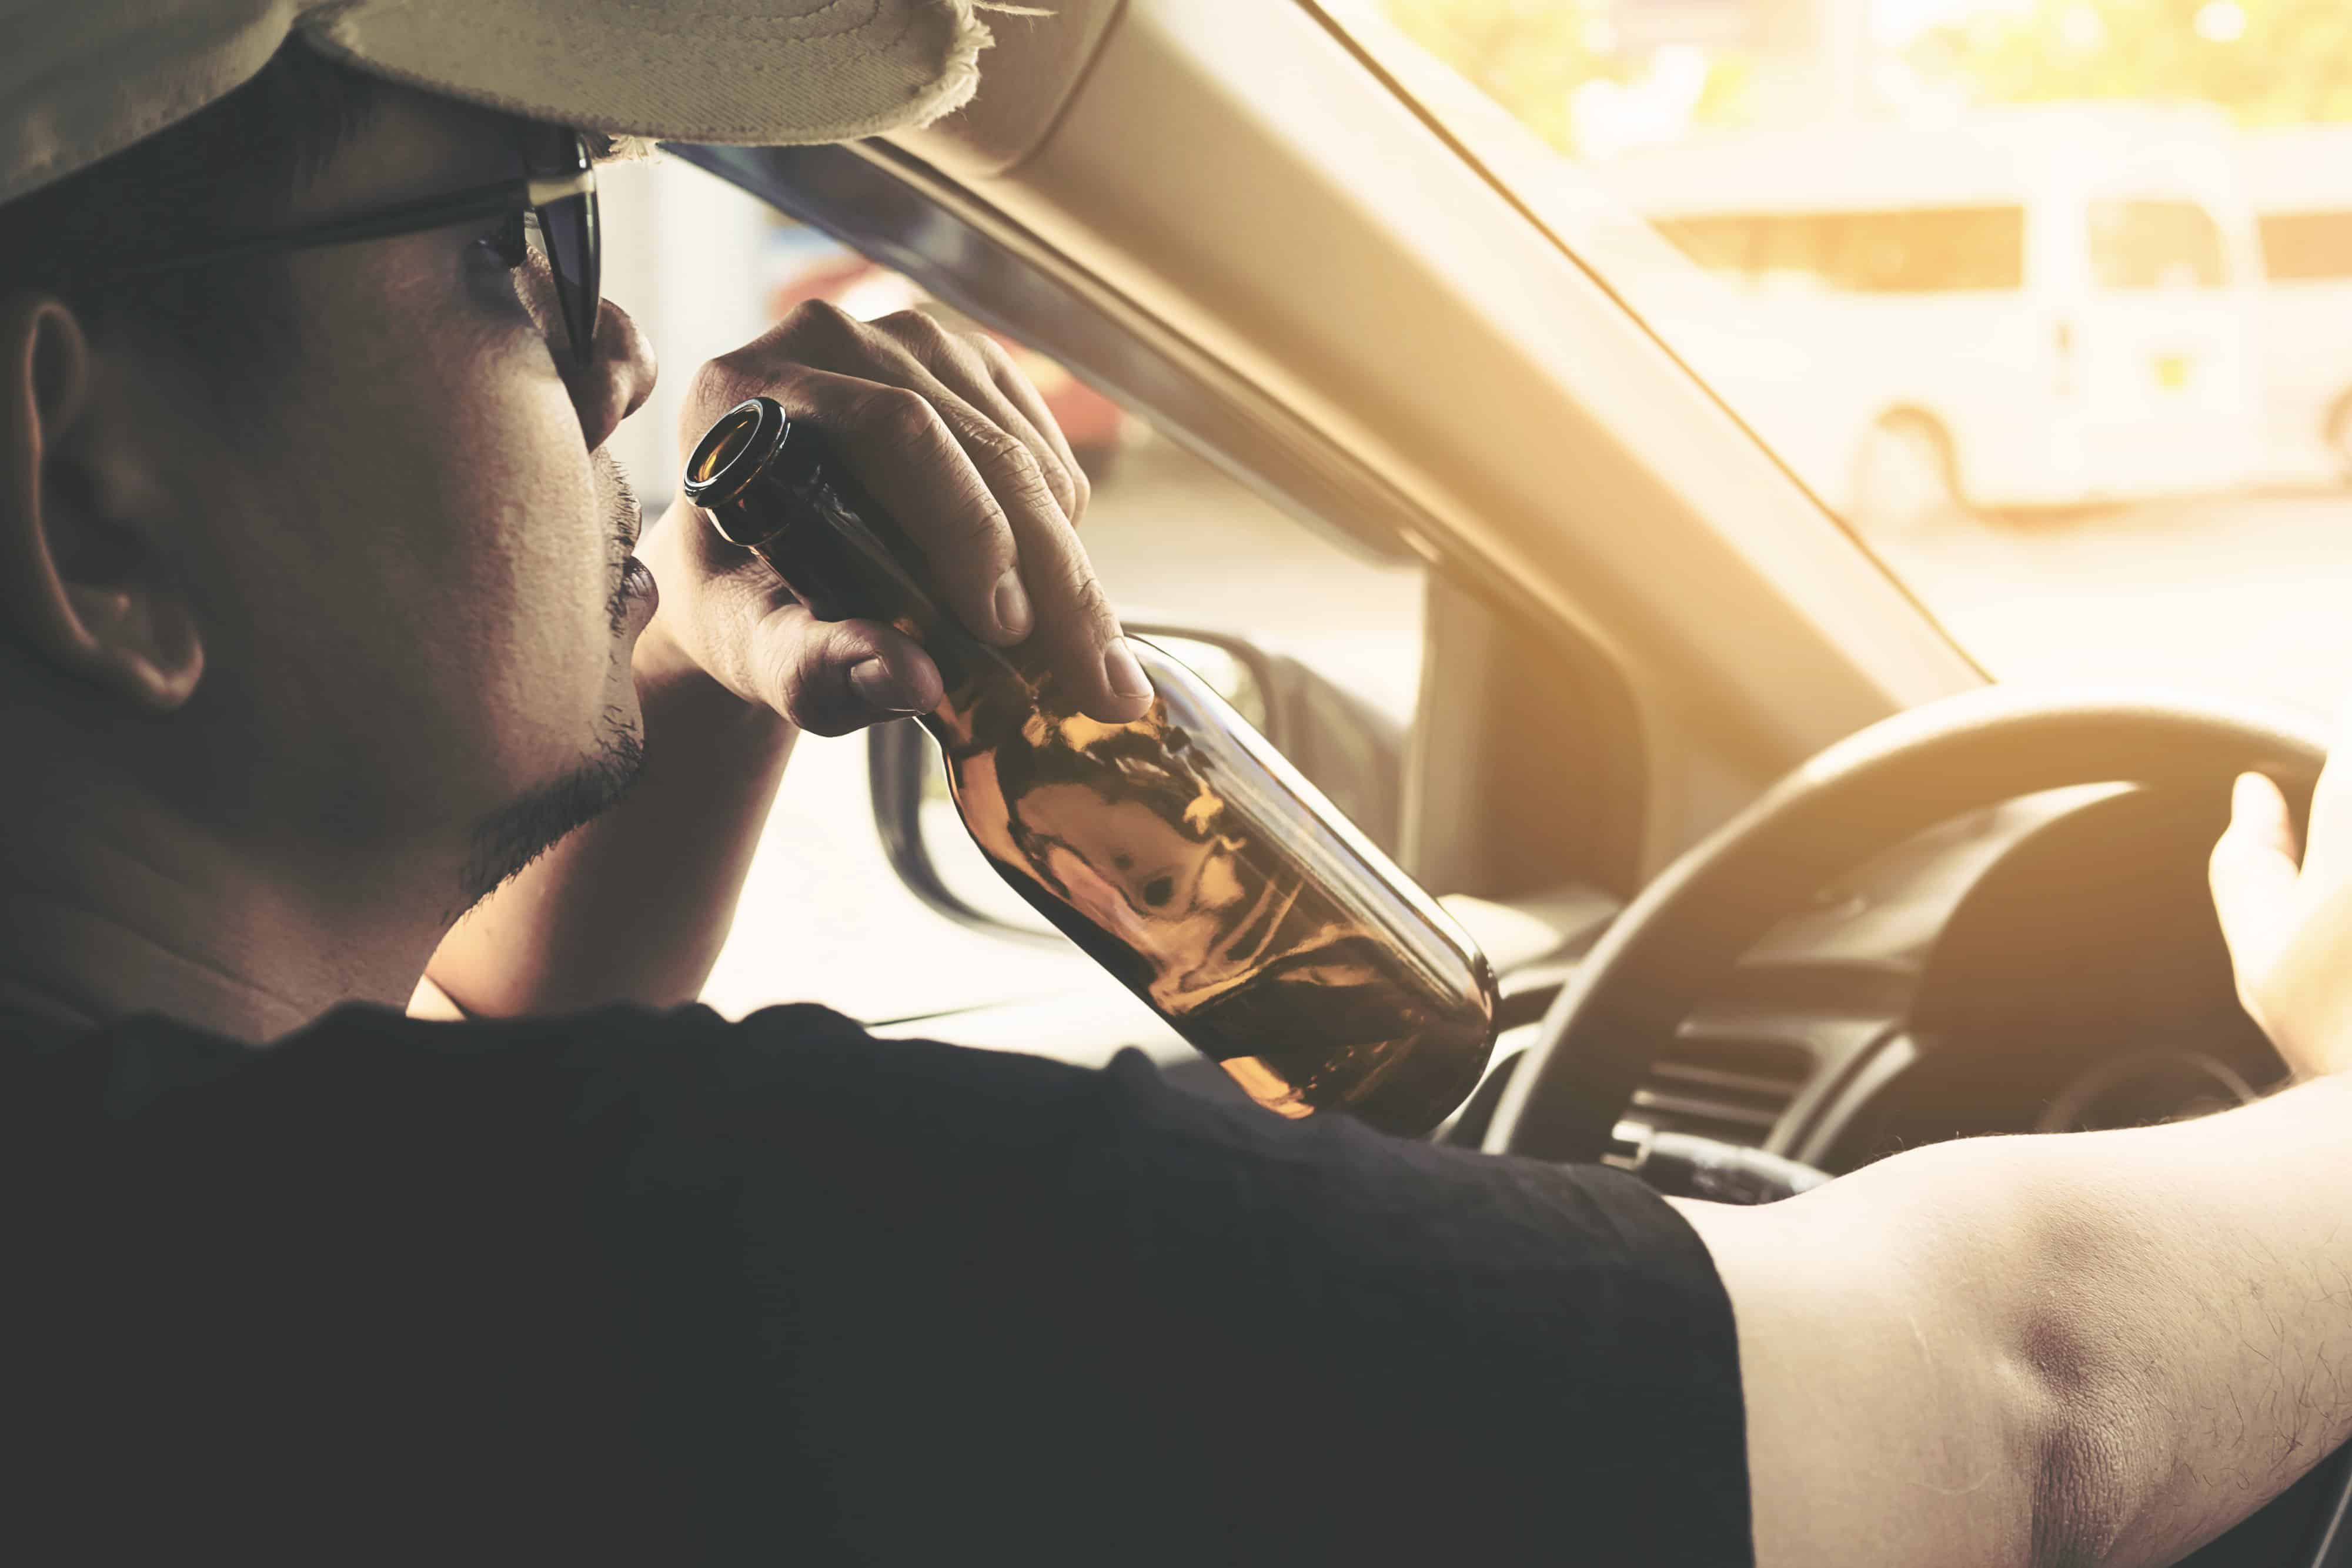 Open Container Laws in Arizona